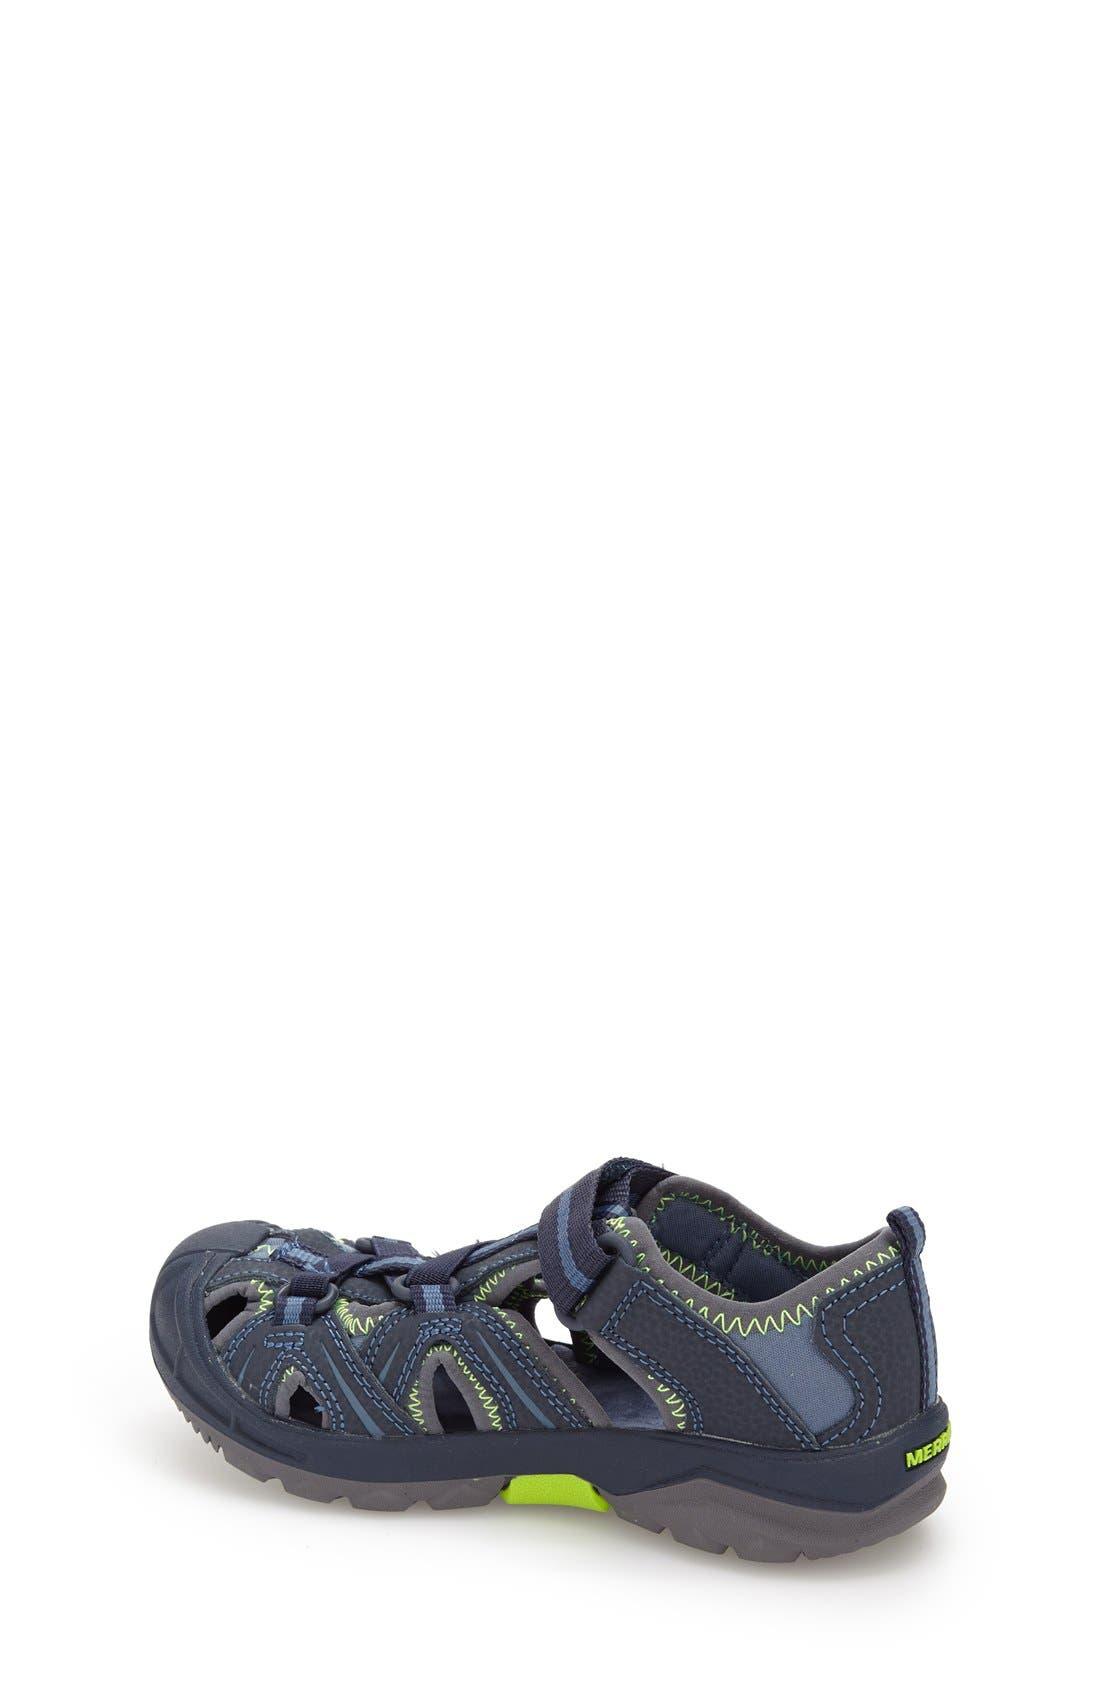 MERRELL, Hydro Water Sandal, Alternate thumbnail 2, color, NAVY/ GREEN